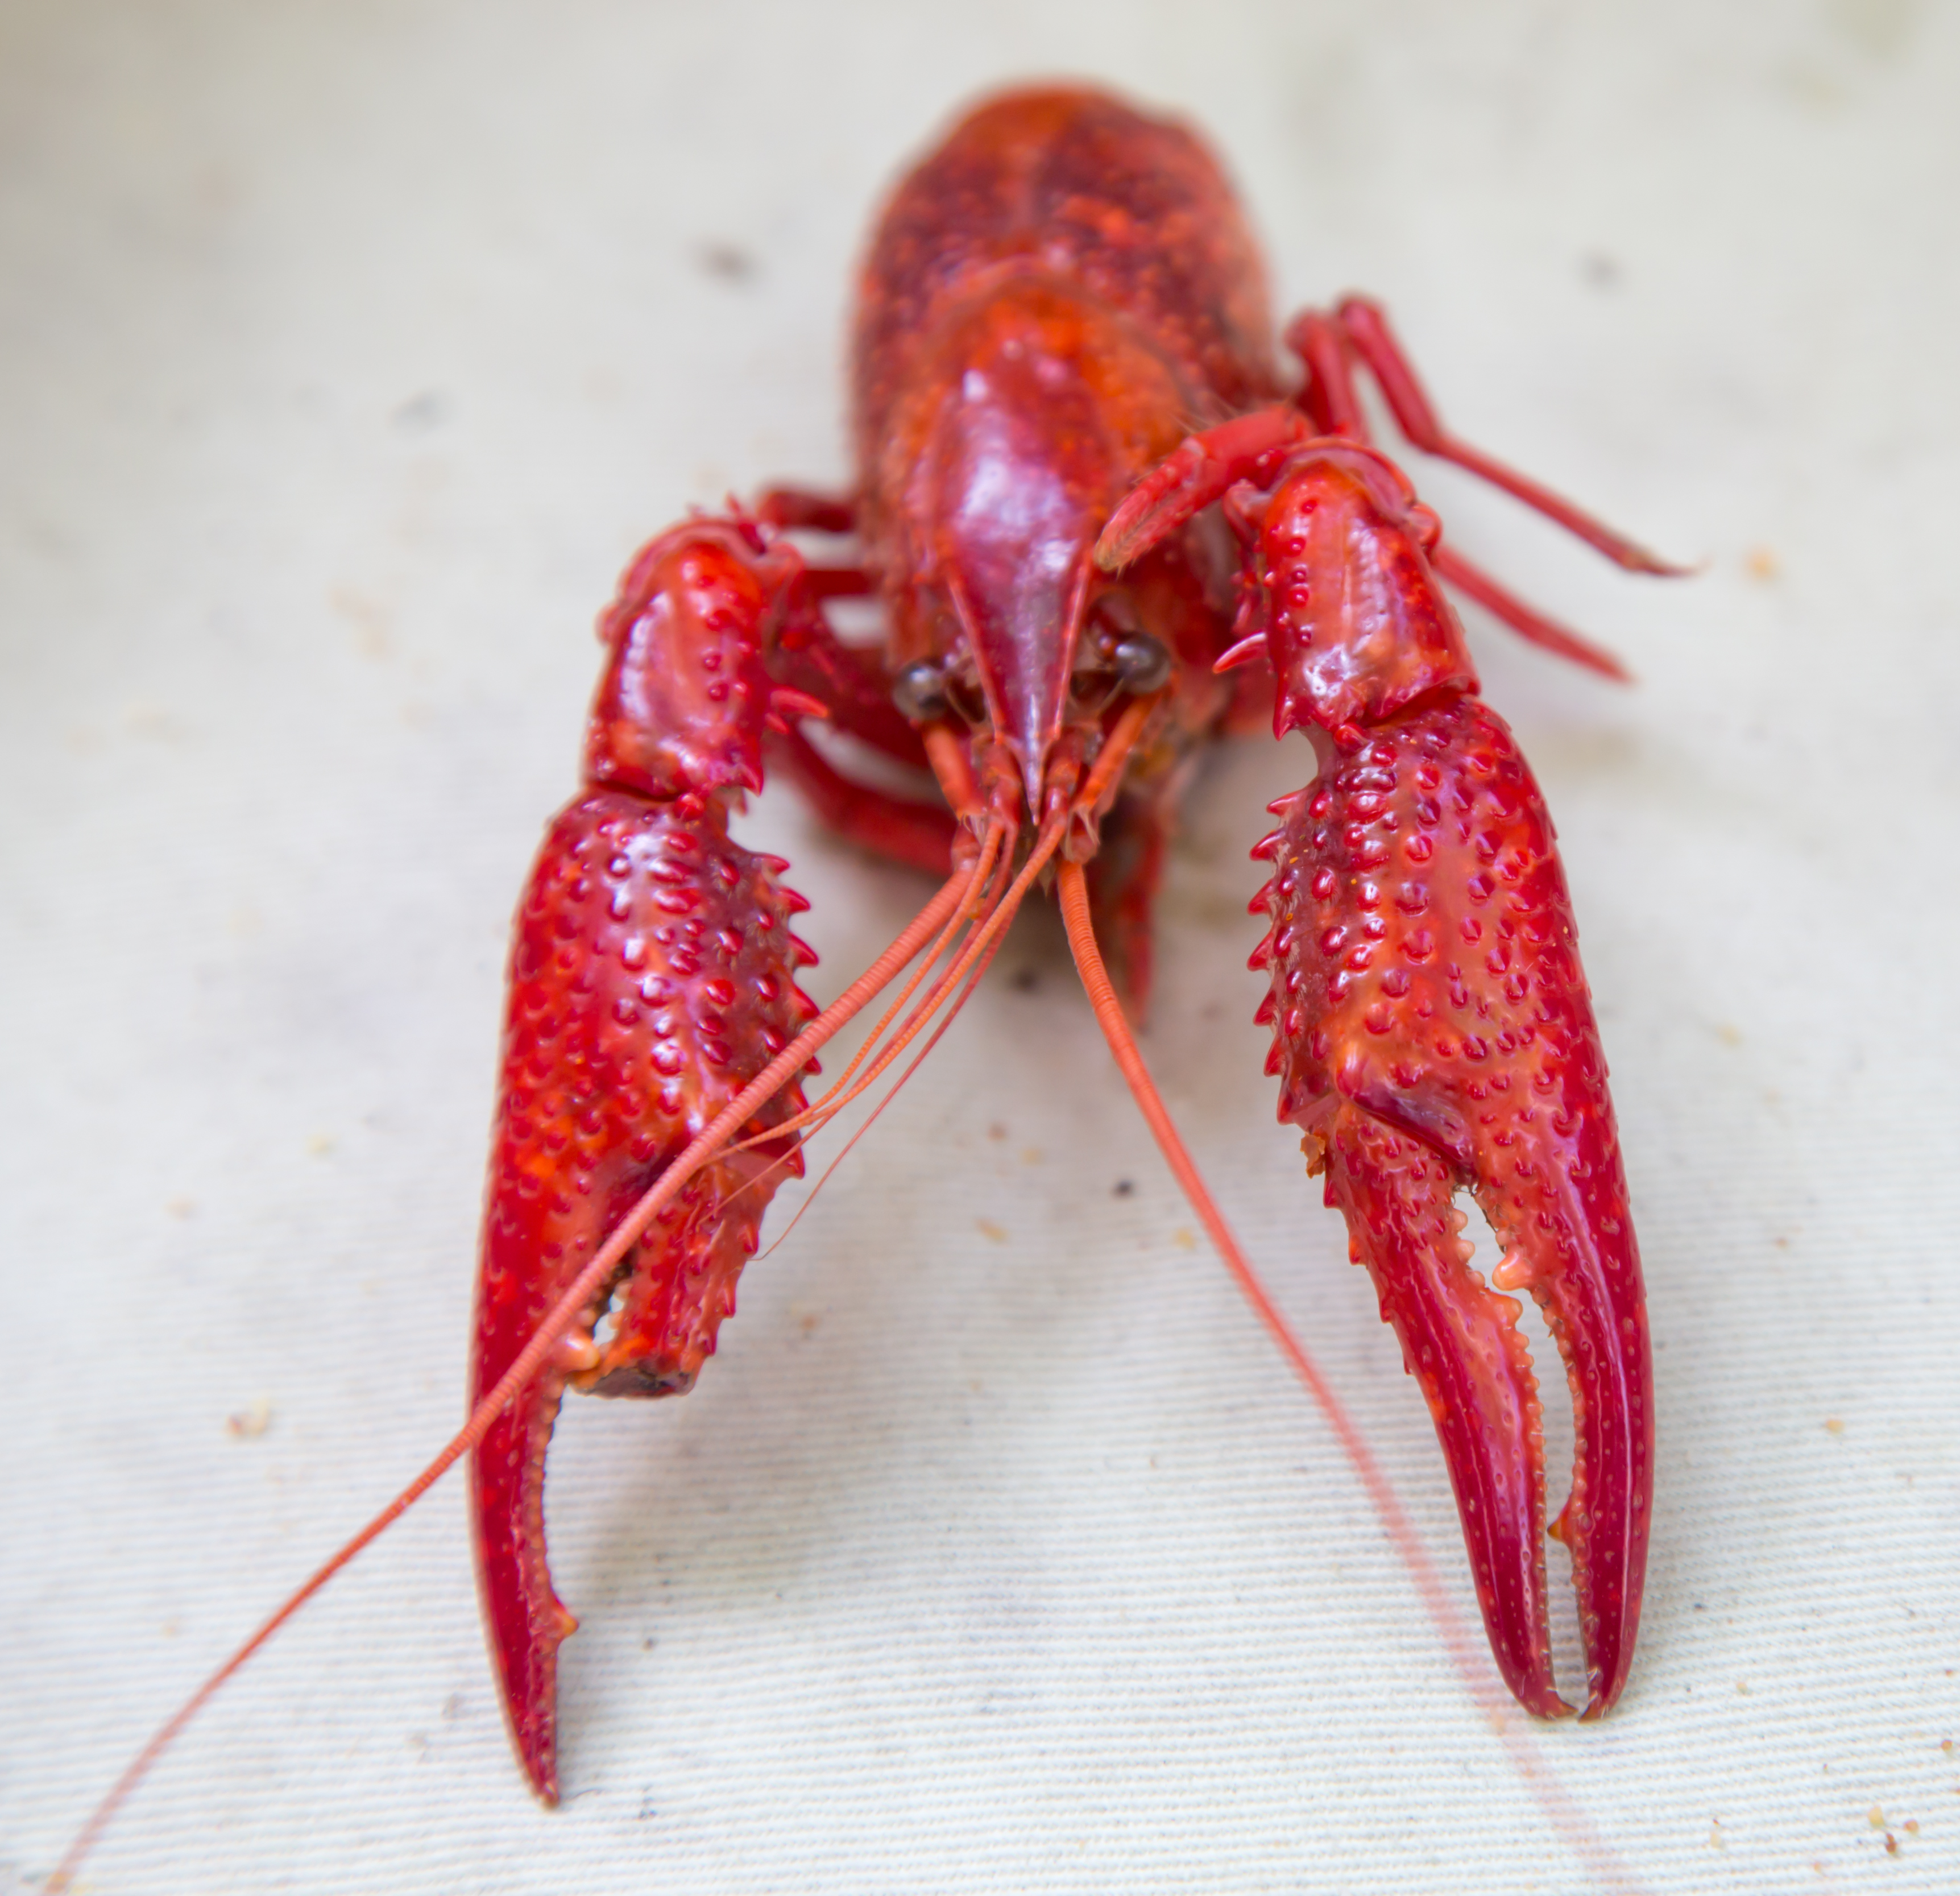 CAJUN CRAWFISH BOIL – IN SILICON VALLEY??